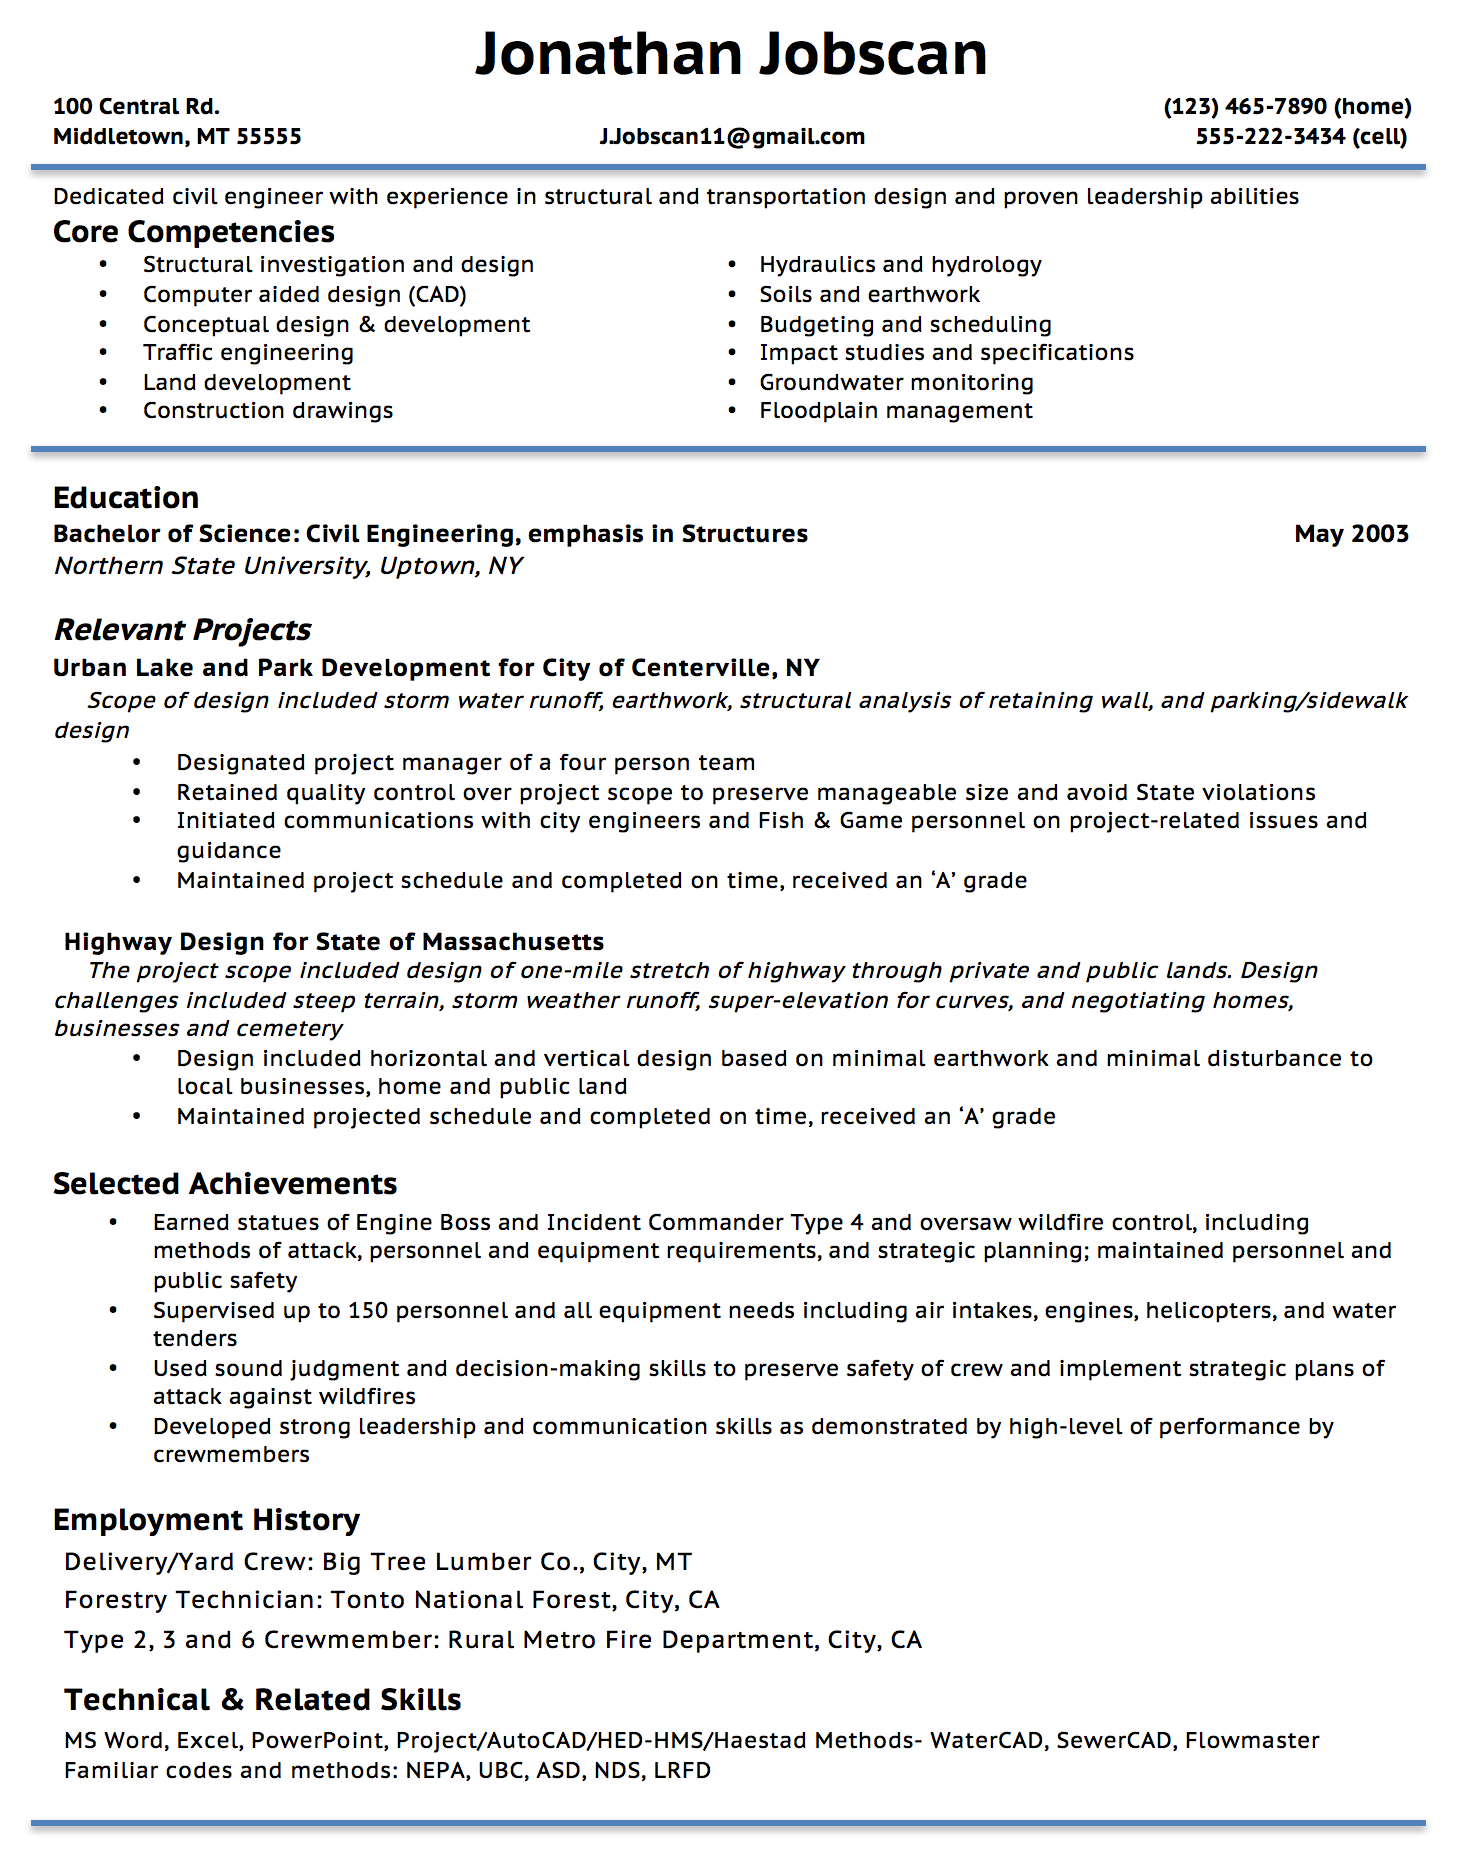 Picnictoimpeachus  Terrific Resume Writing Guide  Jobscan With Entrancing Example Of A Functional Resume Format With Divine Surgical Technologist Resume Also Good Resume Verbs In Addition Procurement Resume And Logistics Coordinator Resume As Well As Help Me Make A Resume Additionally Resume Reference Template From Jobscanco With Picnictoimpeachus  Entrancing Resume Writing Guide  Jobscan With Divine Example Of A Functional Resume Format And Terrific Surgical Technologist Resume Also Good Resume Verbs In Addition Procurement Resume From Jobscanco